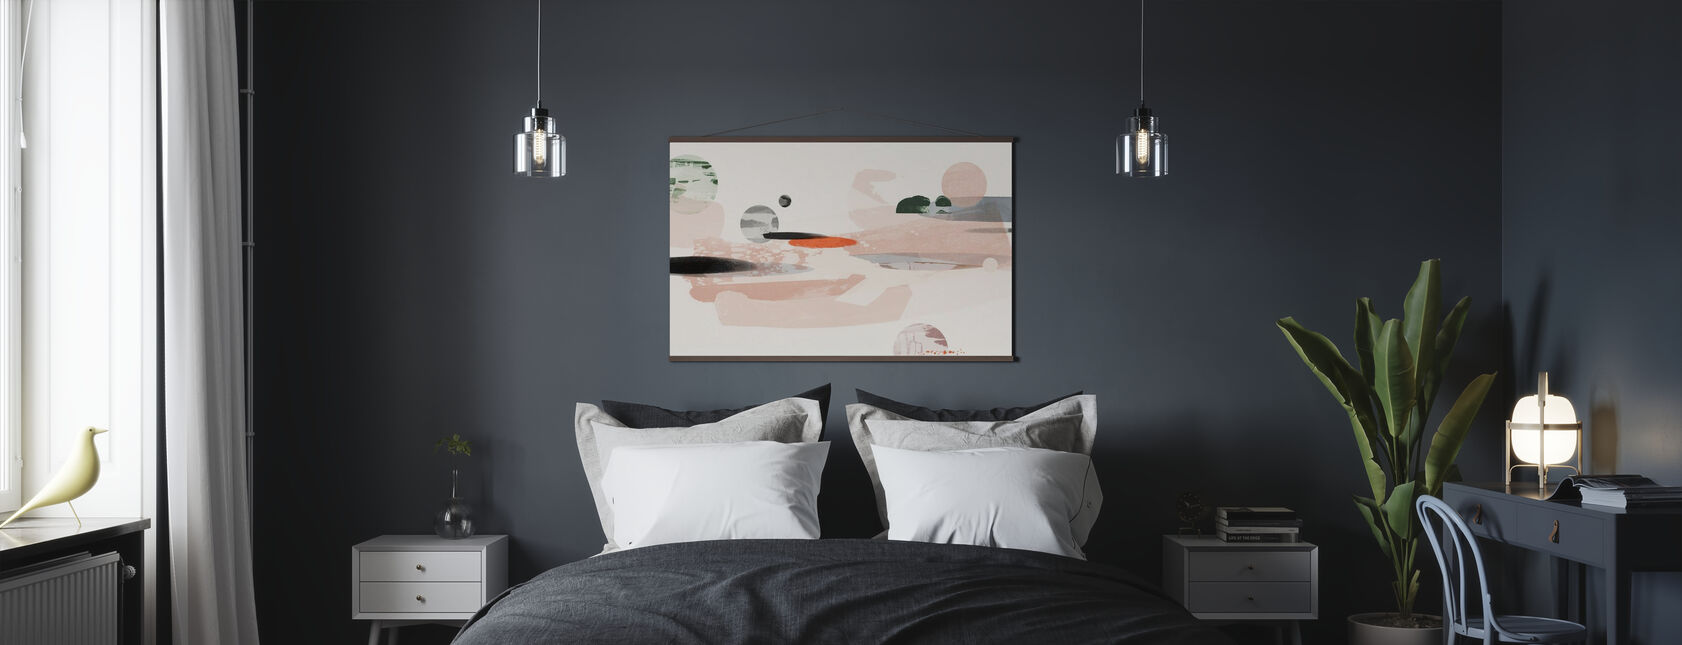 Abstraction cosmique - Affiche - Chambre